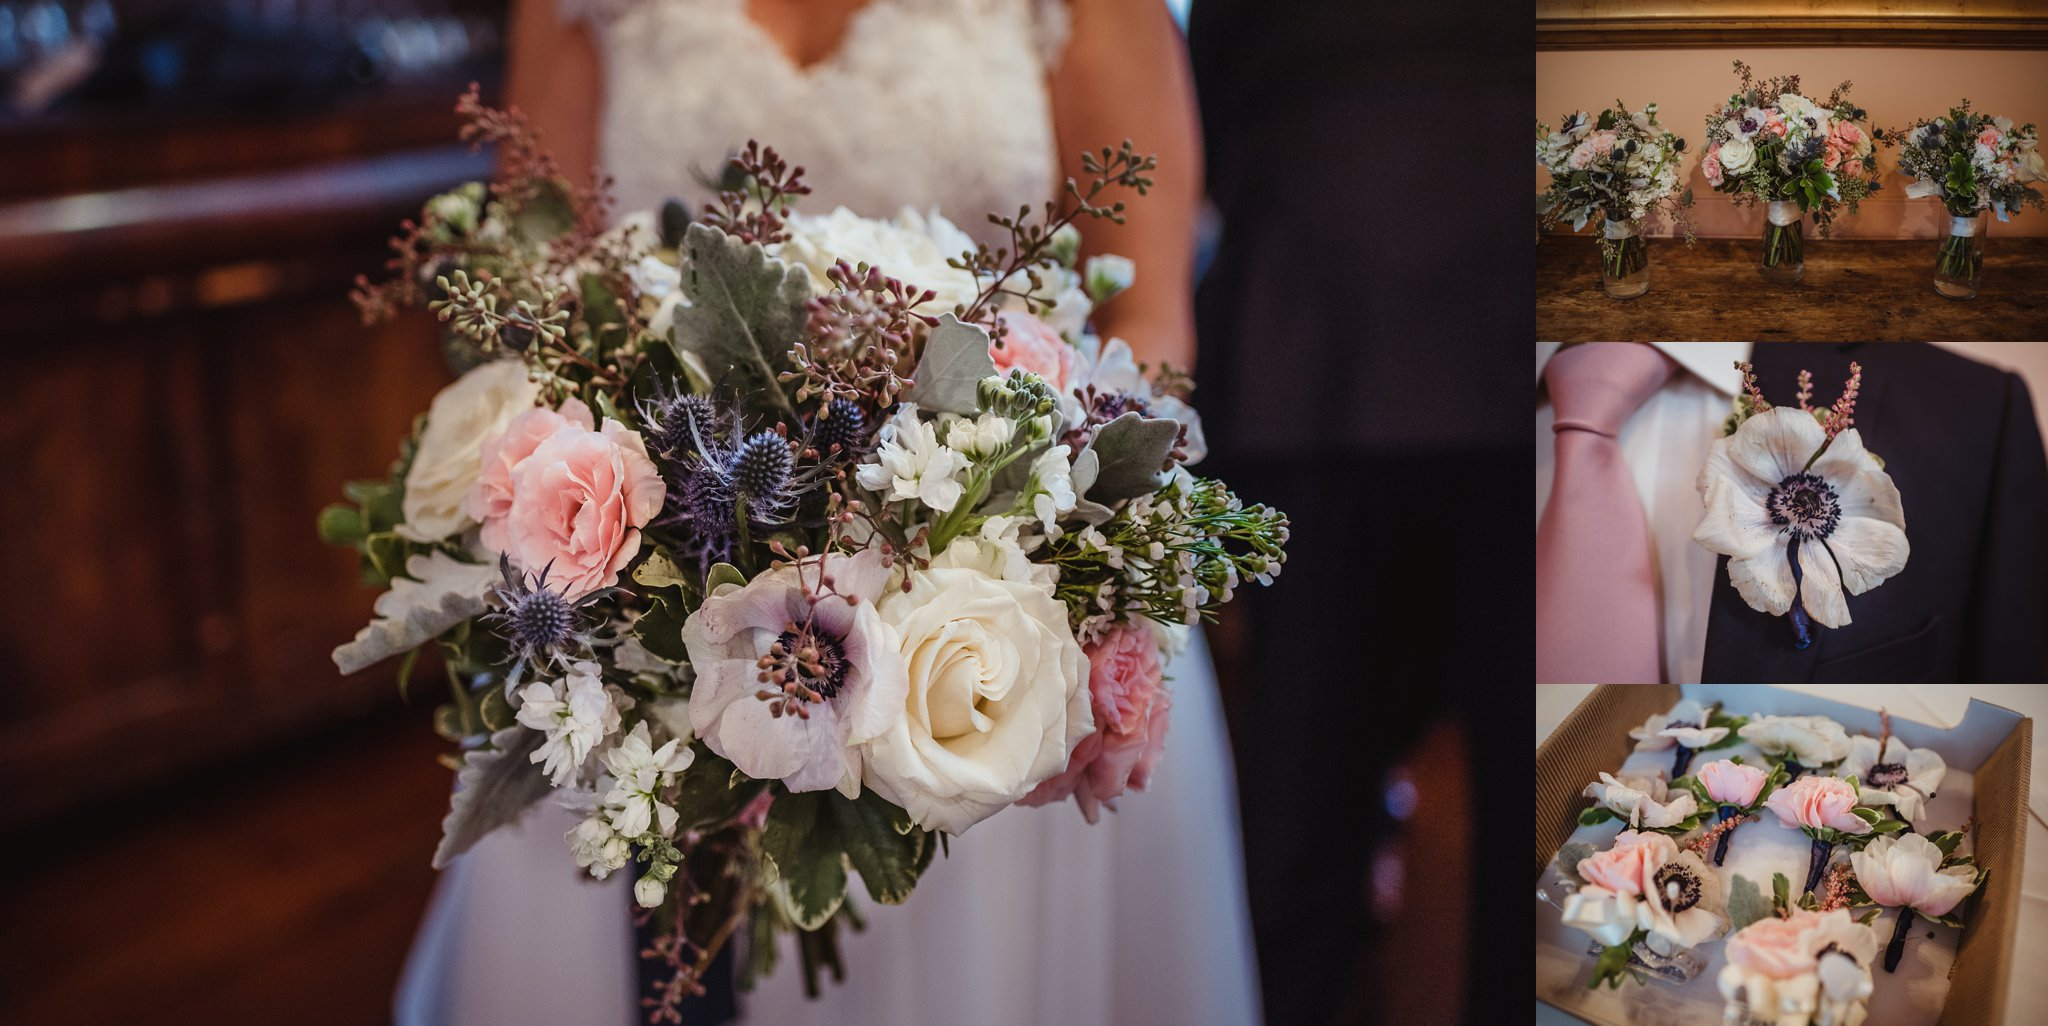 The bride's bouquet, as well as all the bridesmaids flowers, included thistles, white and pink roses, and lots of greenery, pictures taken by Rose Trail Images at Caffe Luna in Raleigh, NC.